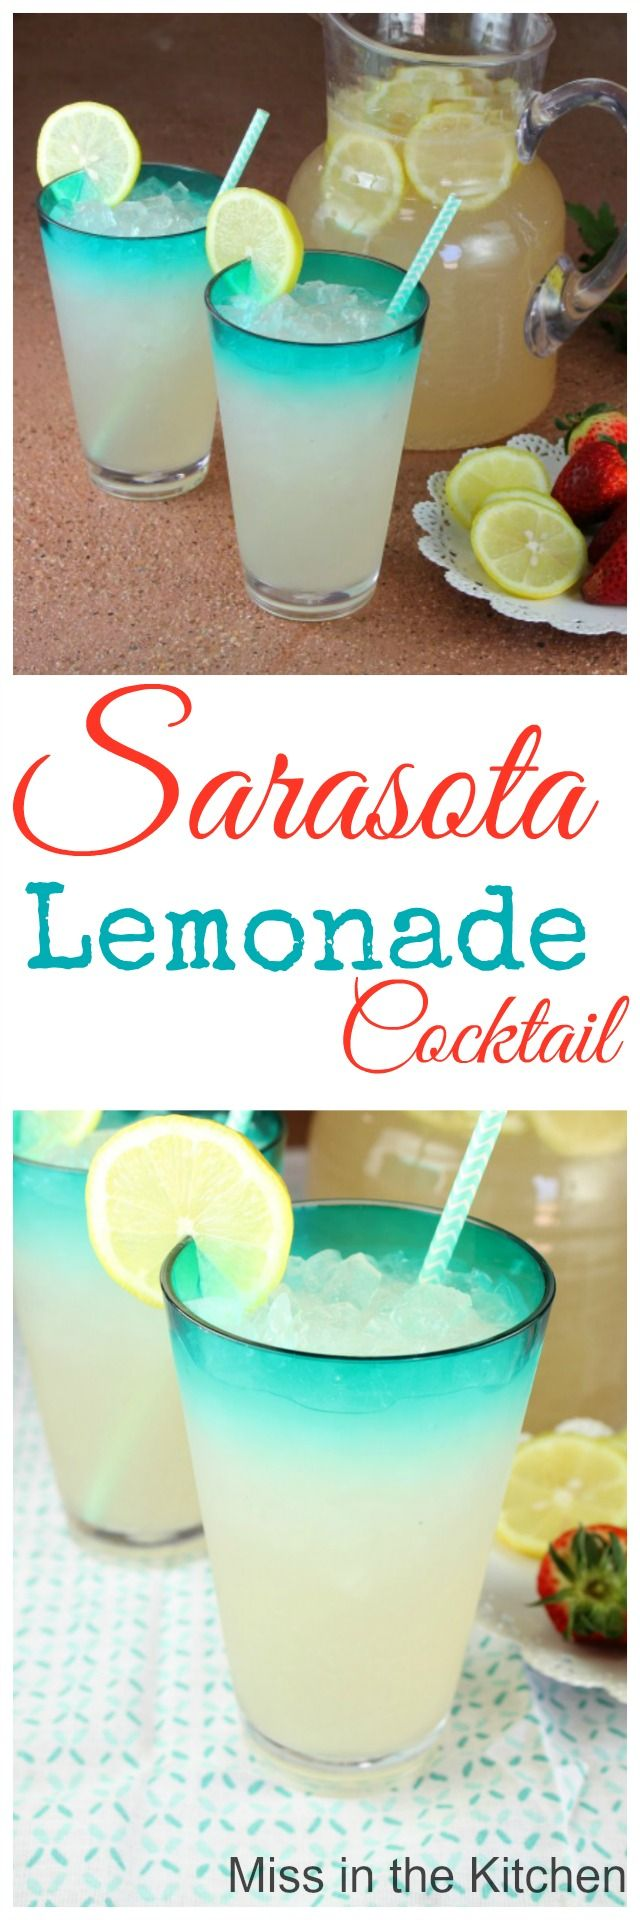 Sarasota Lemonade Cocktail Recipe from MissintheKitchen.com